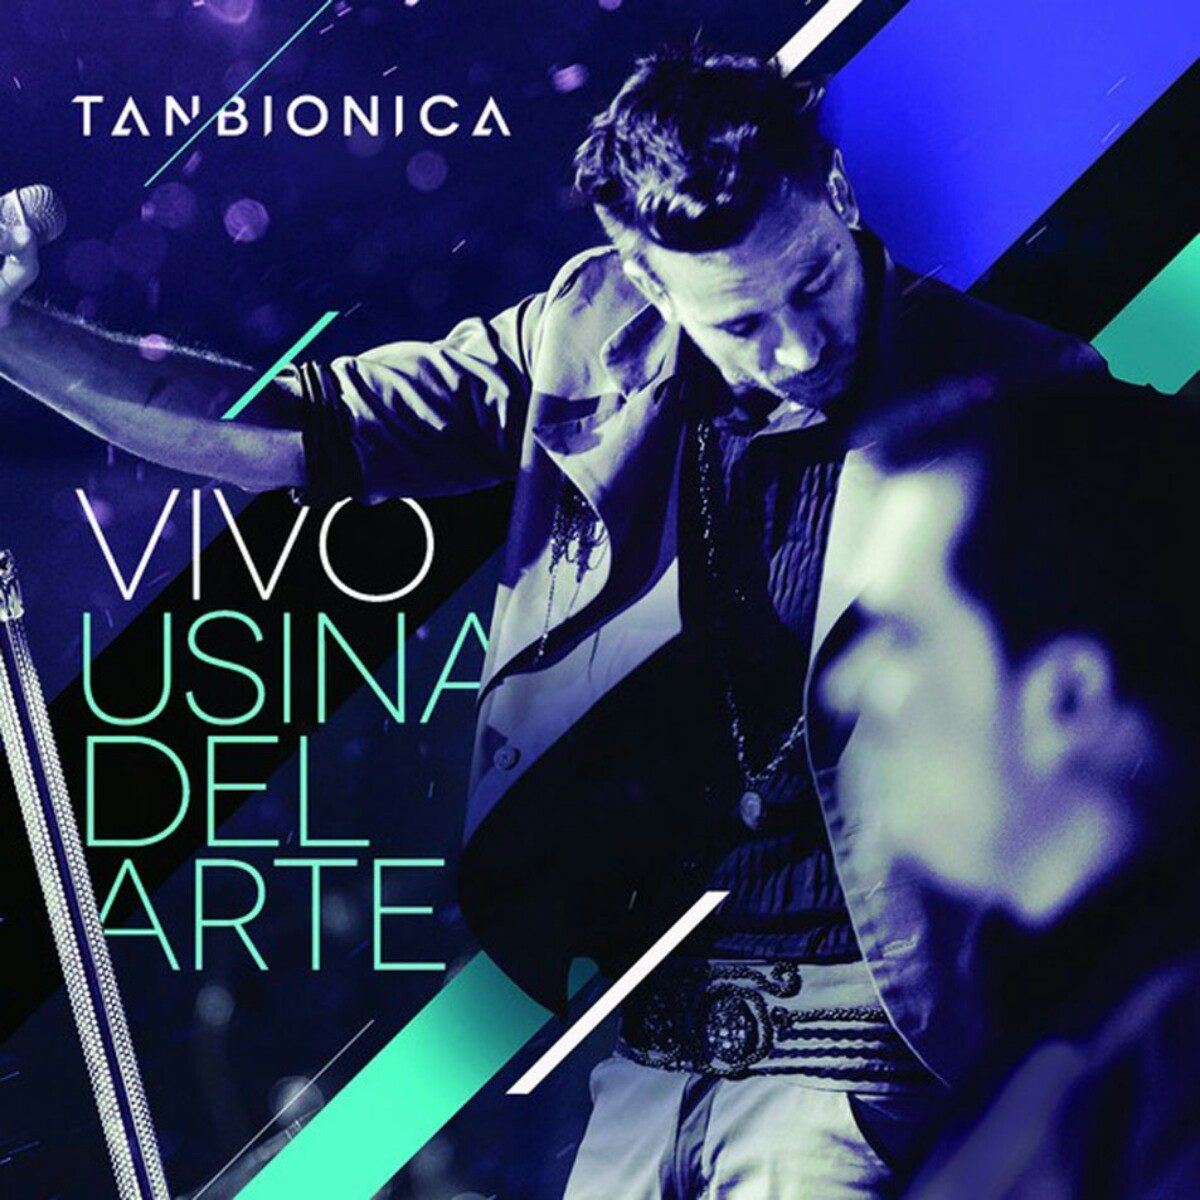 Vivo Usina del Arte (CD+DVD)